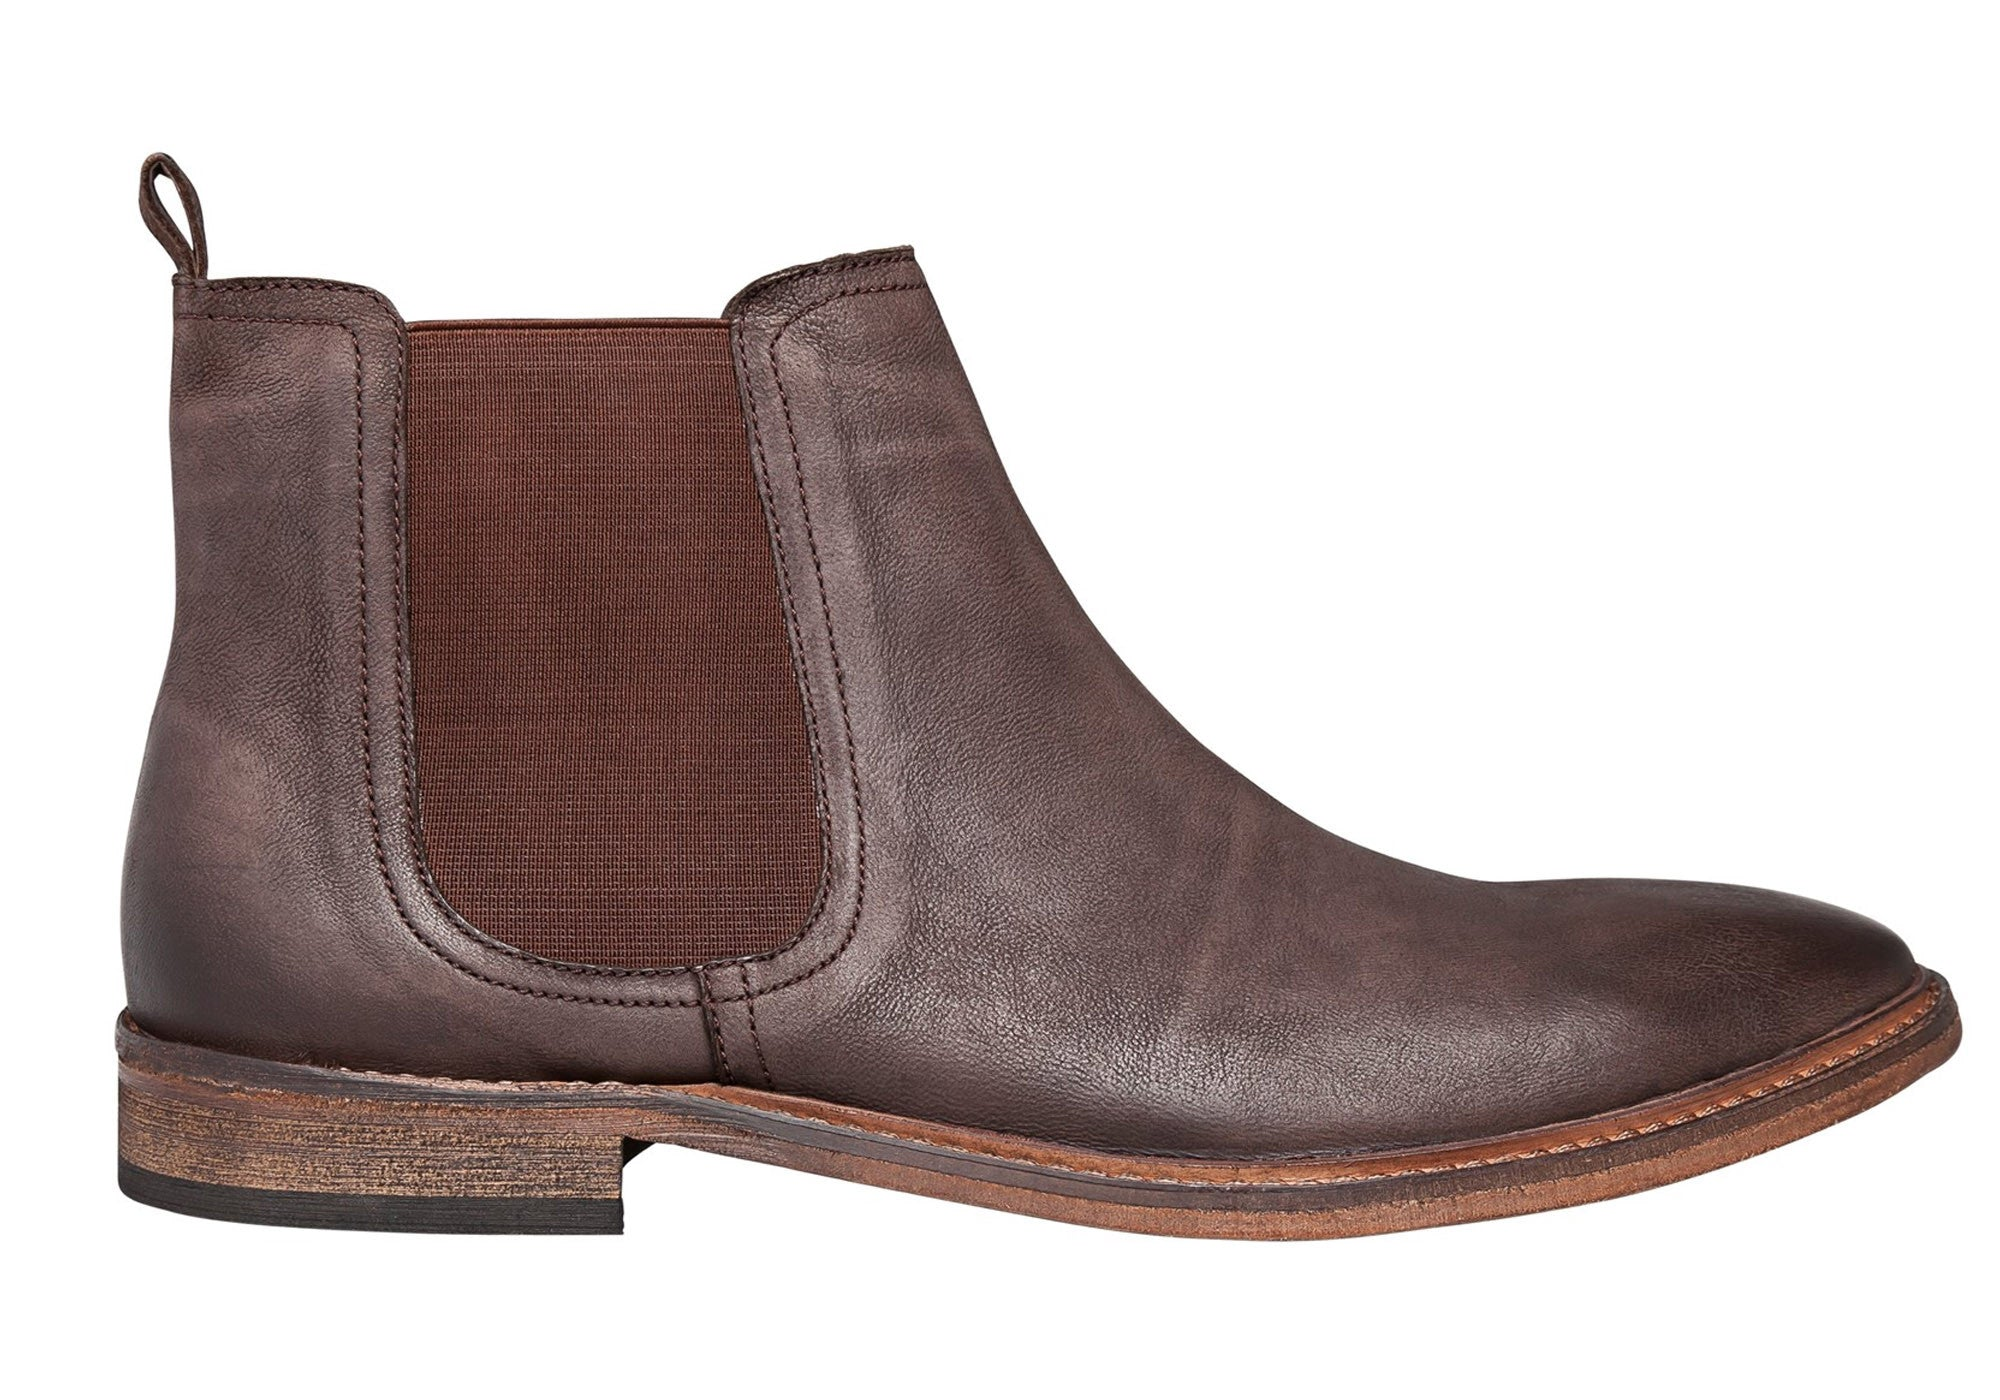 NEW-JULIUS-MARLOW-RAPTOR-MENS-LEATHER-CHELSEA-BOOTS